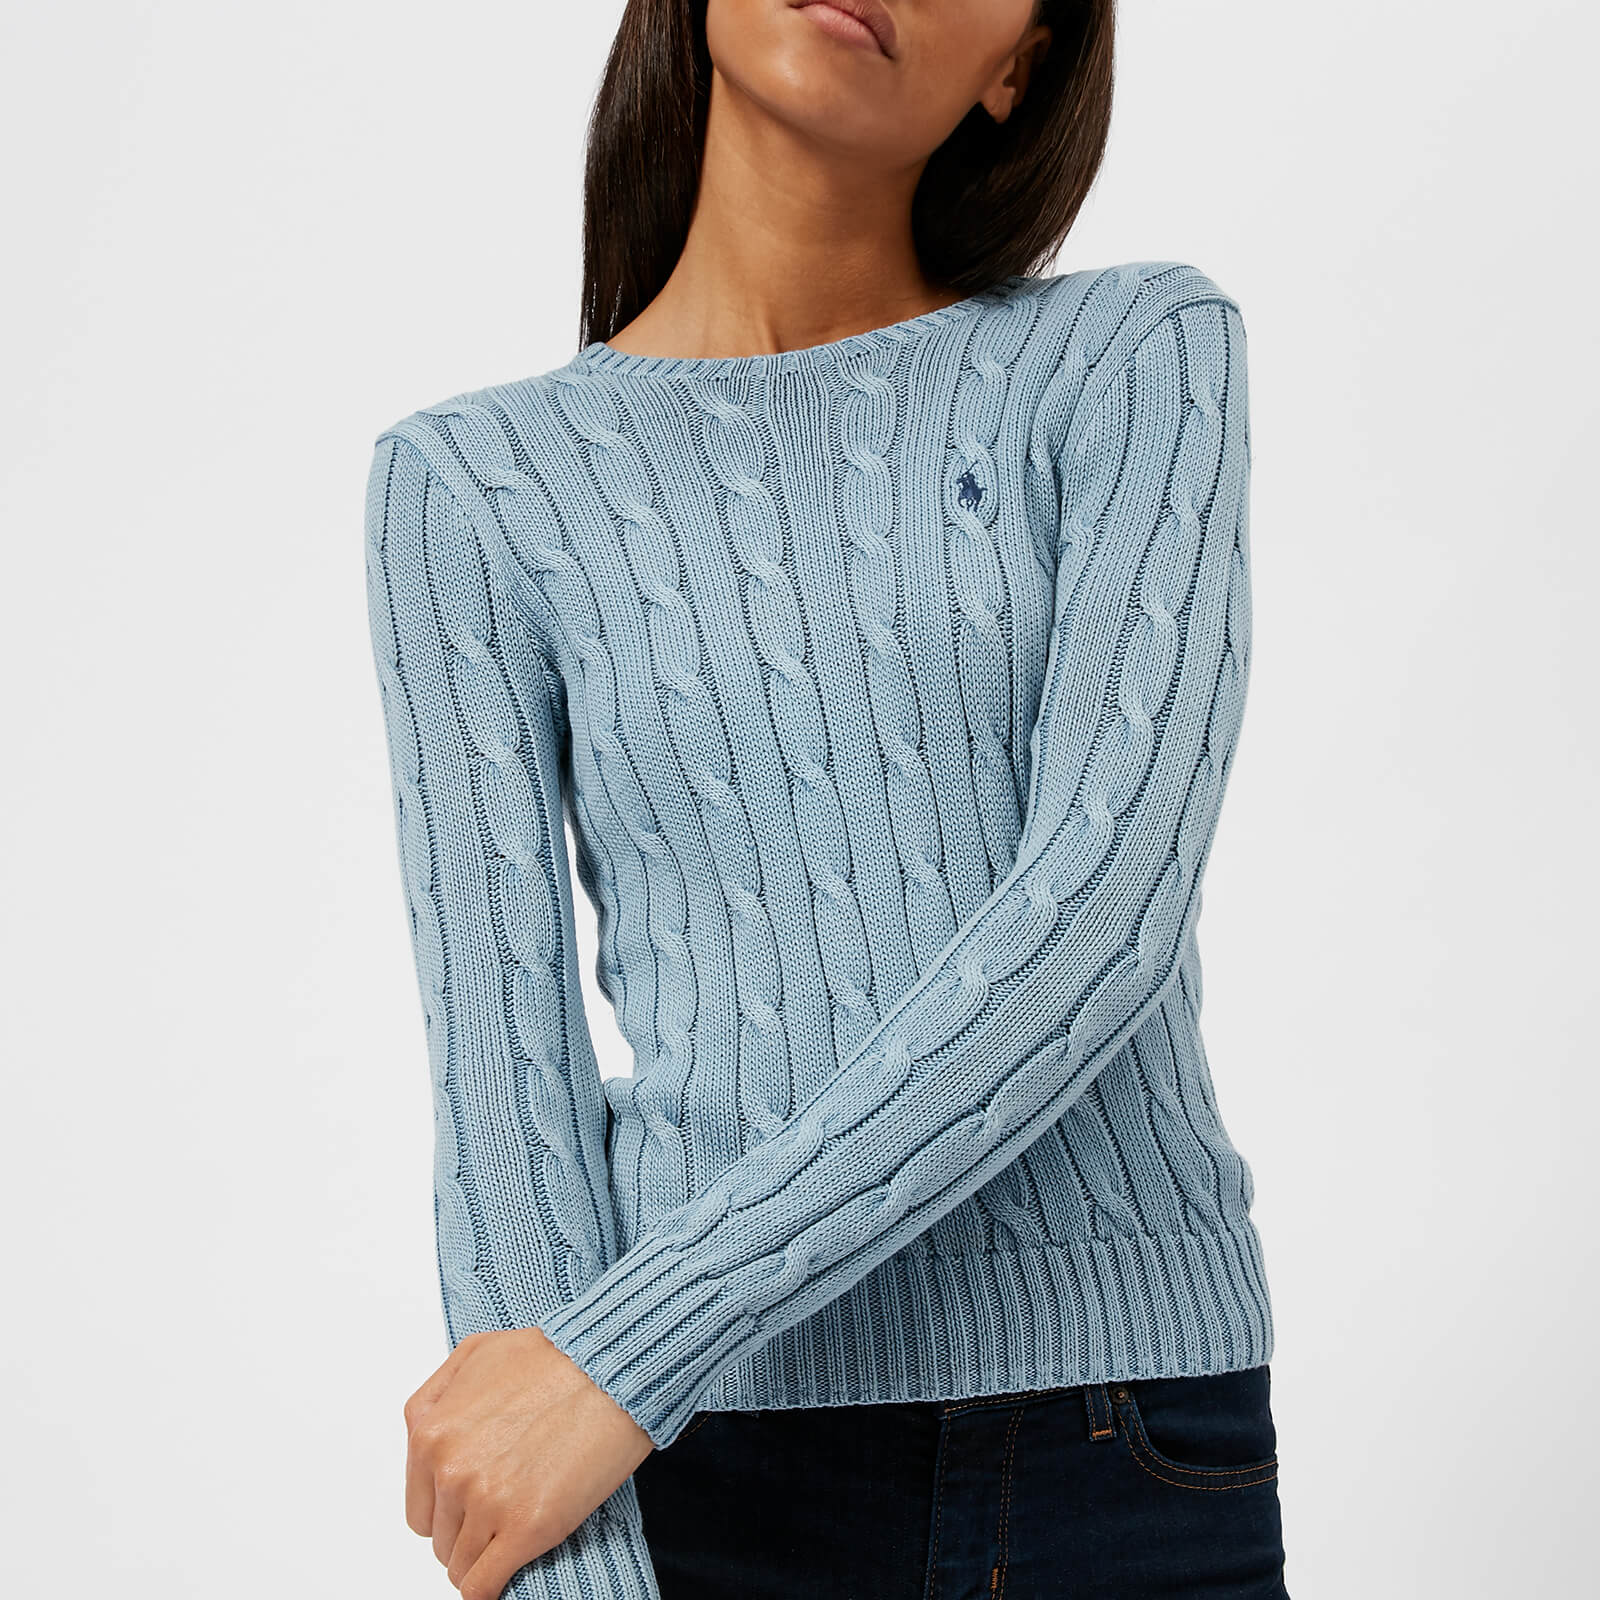 c38f599a246e60 Polo Ralph Lauren Women's Julianna Crew Neck Jumper - Chambray Blue - Free  UK Delivery over £50